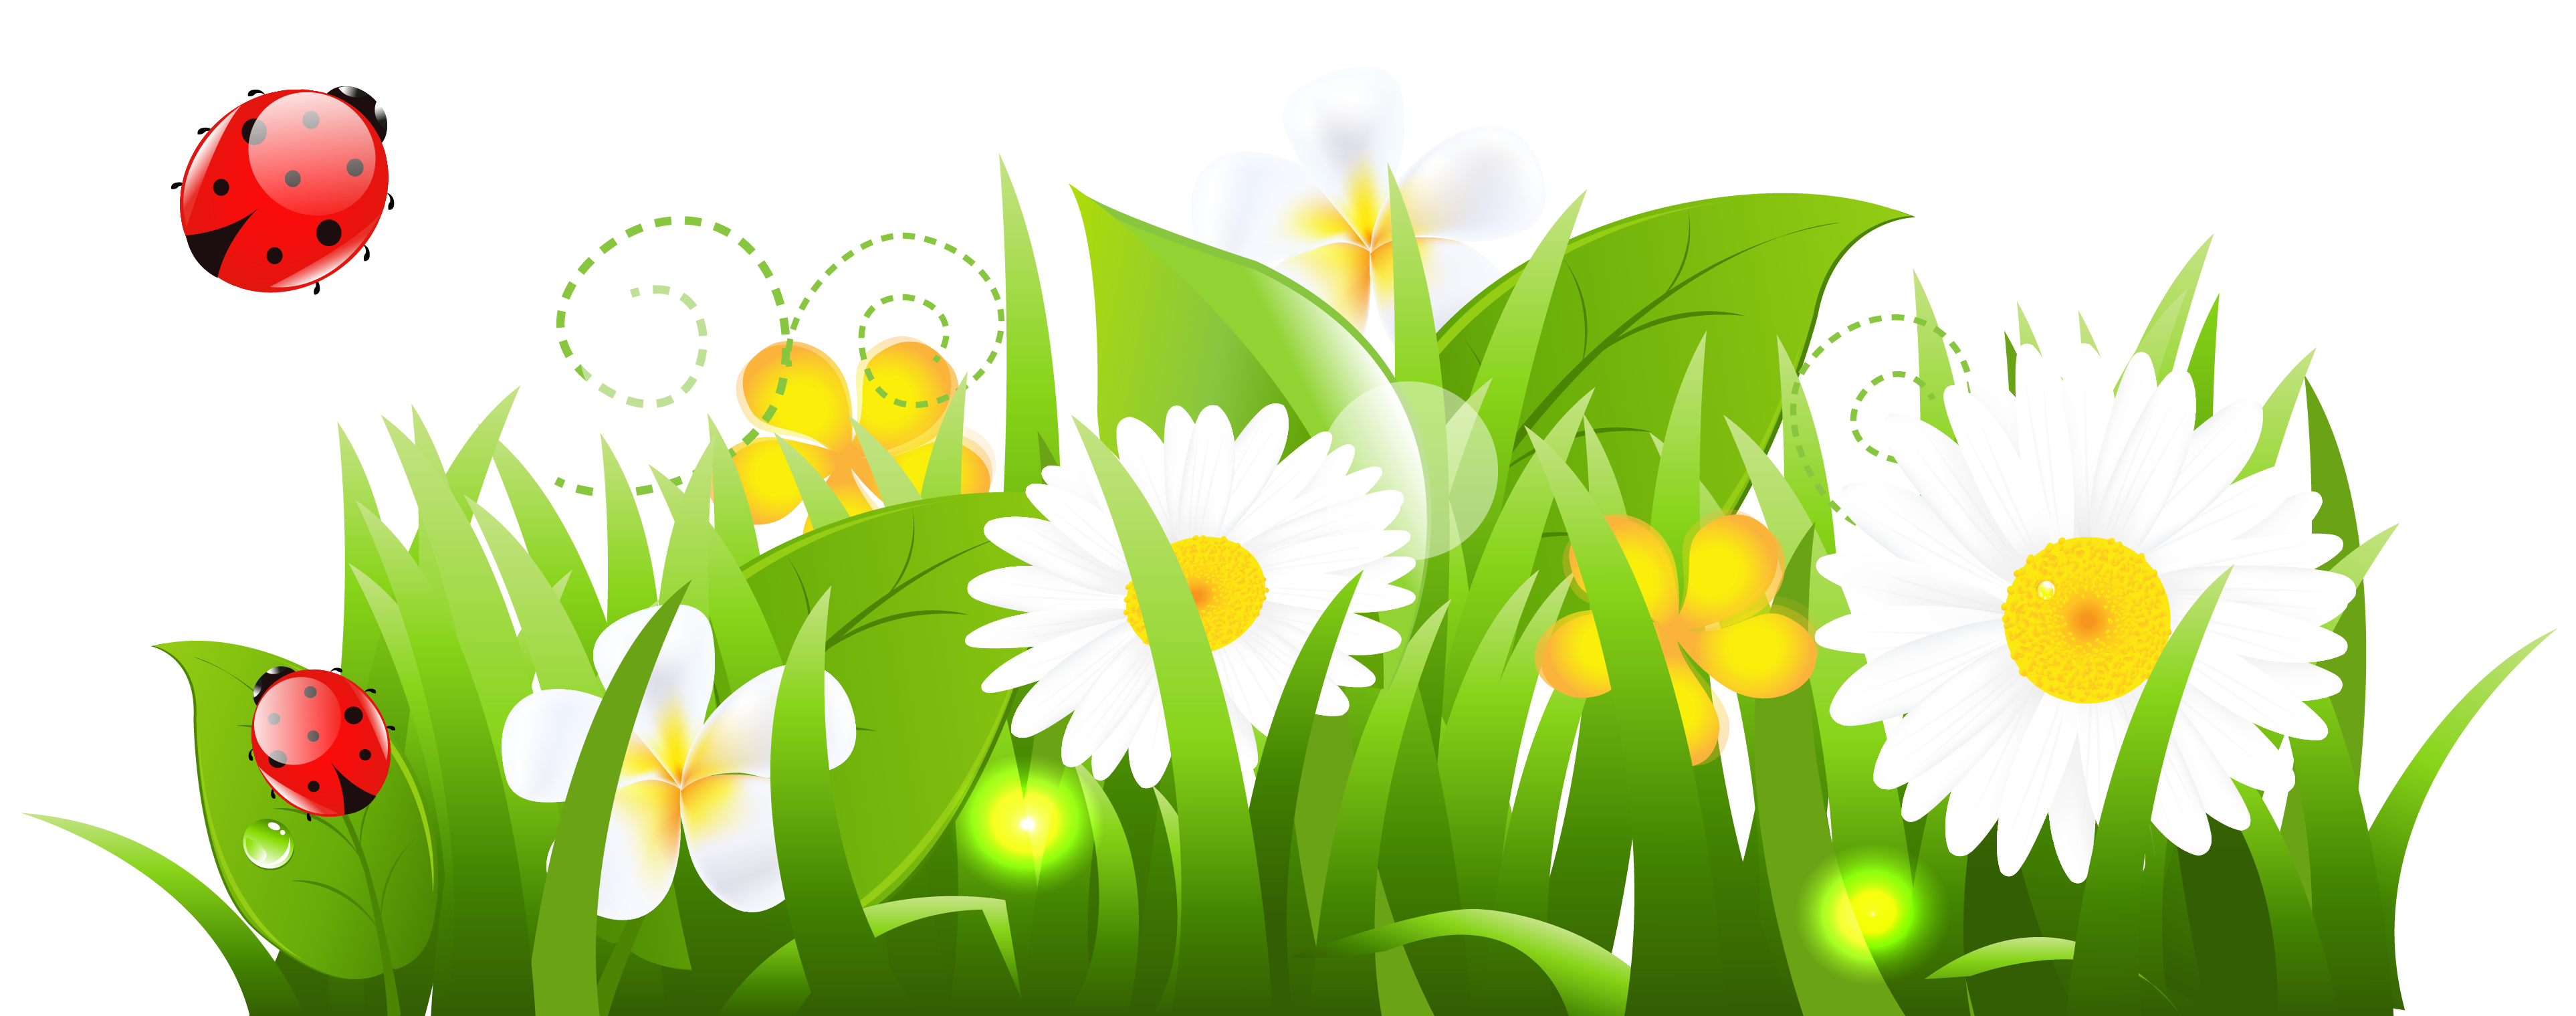 Flower clipart grass. And flowers pictures to